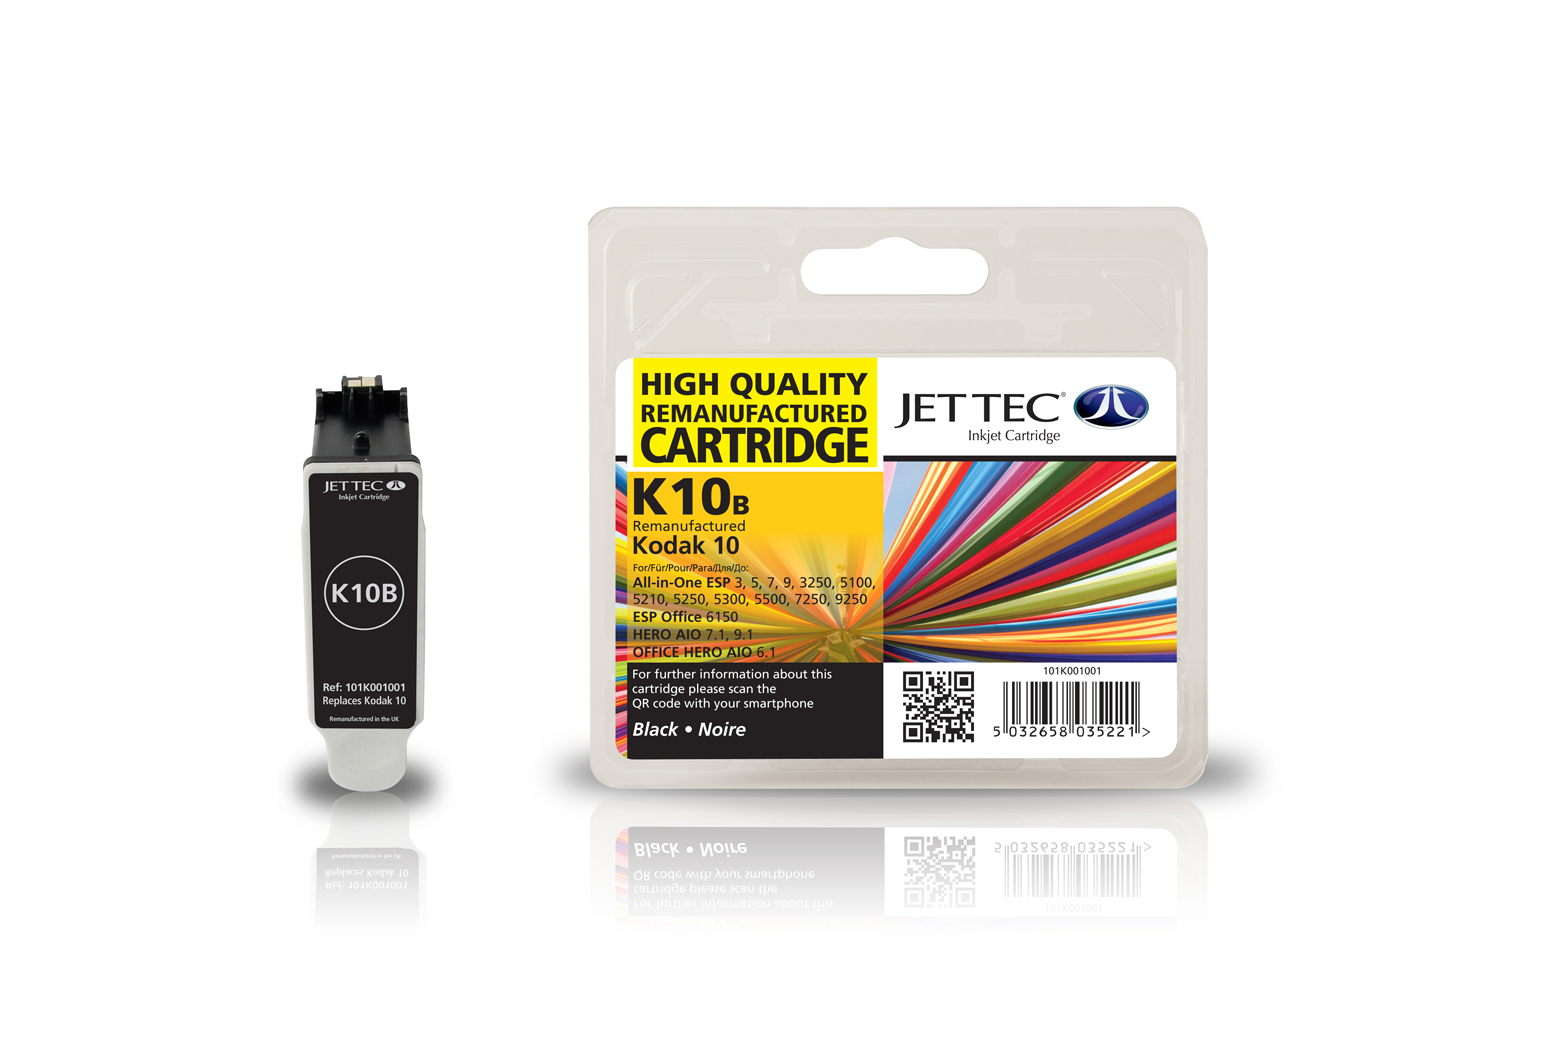 Jet Tec K10B remanufactured Kodak 10 black inkjet printer cartridges